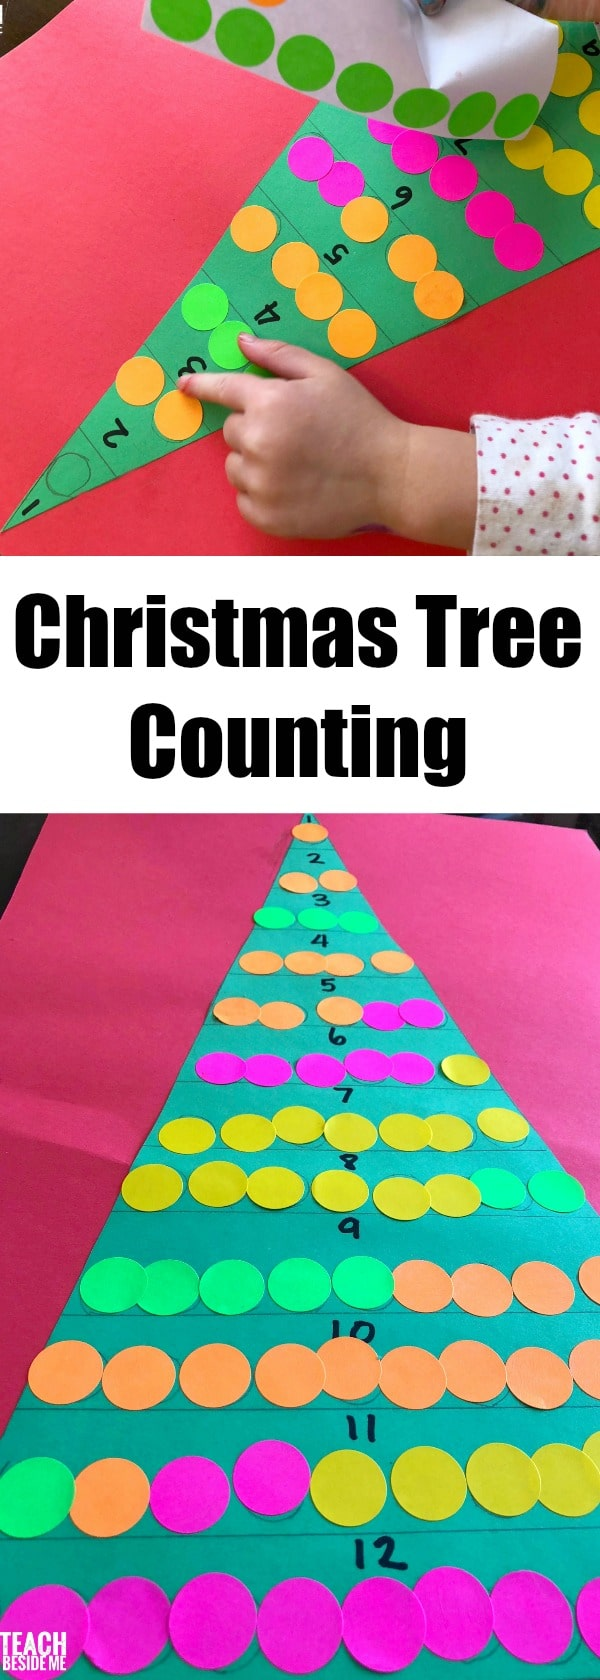 Christmas tree counting for preschool